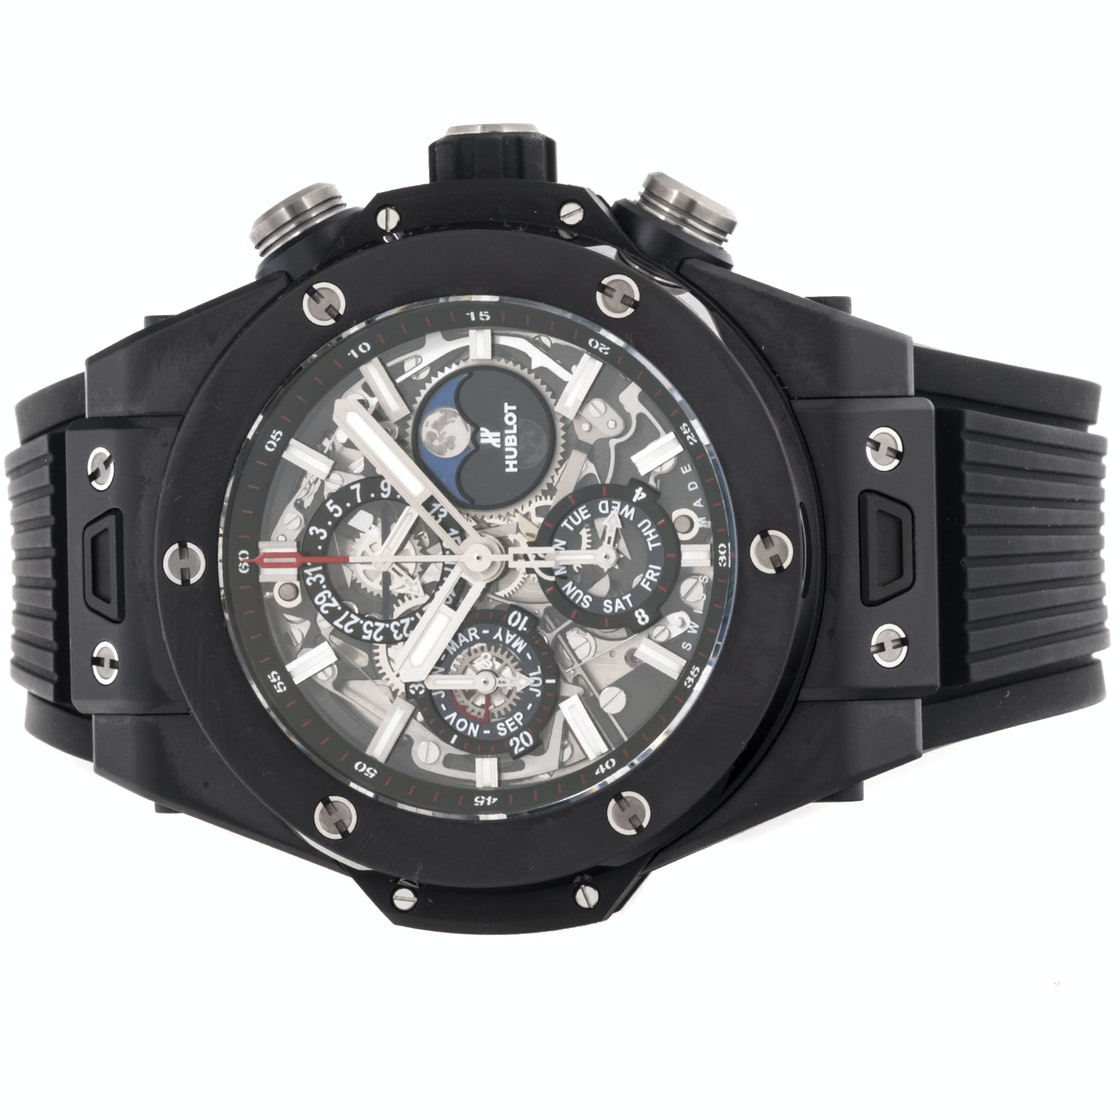 Hublot Big Bang Unico Perpetual Calendar Black Magic Chronograph 406.CI.0170.RX